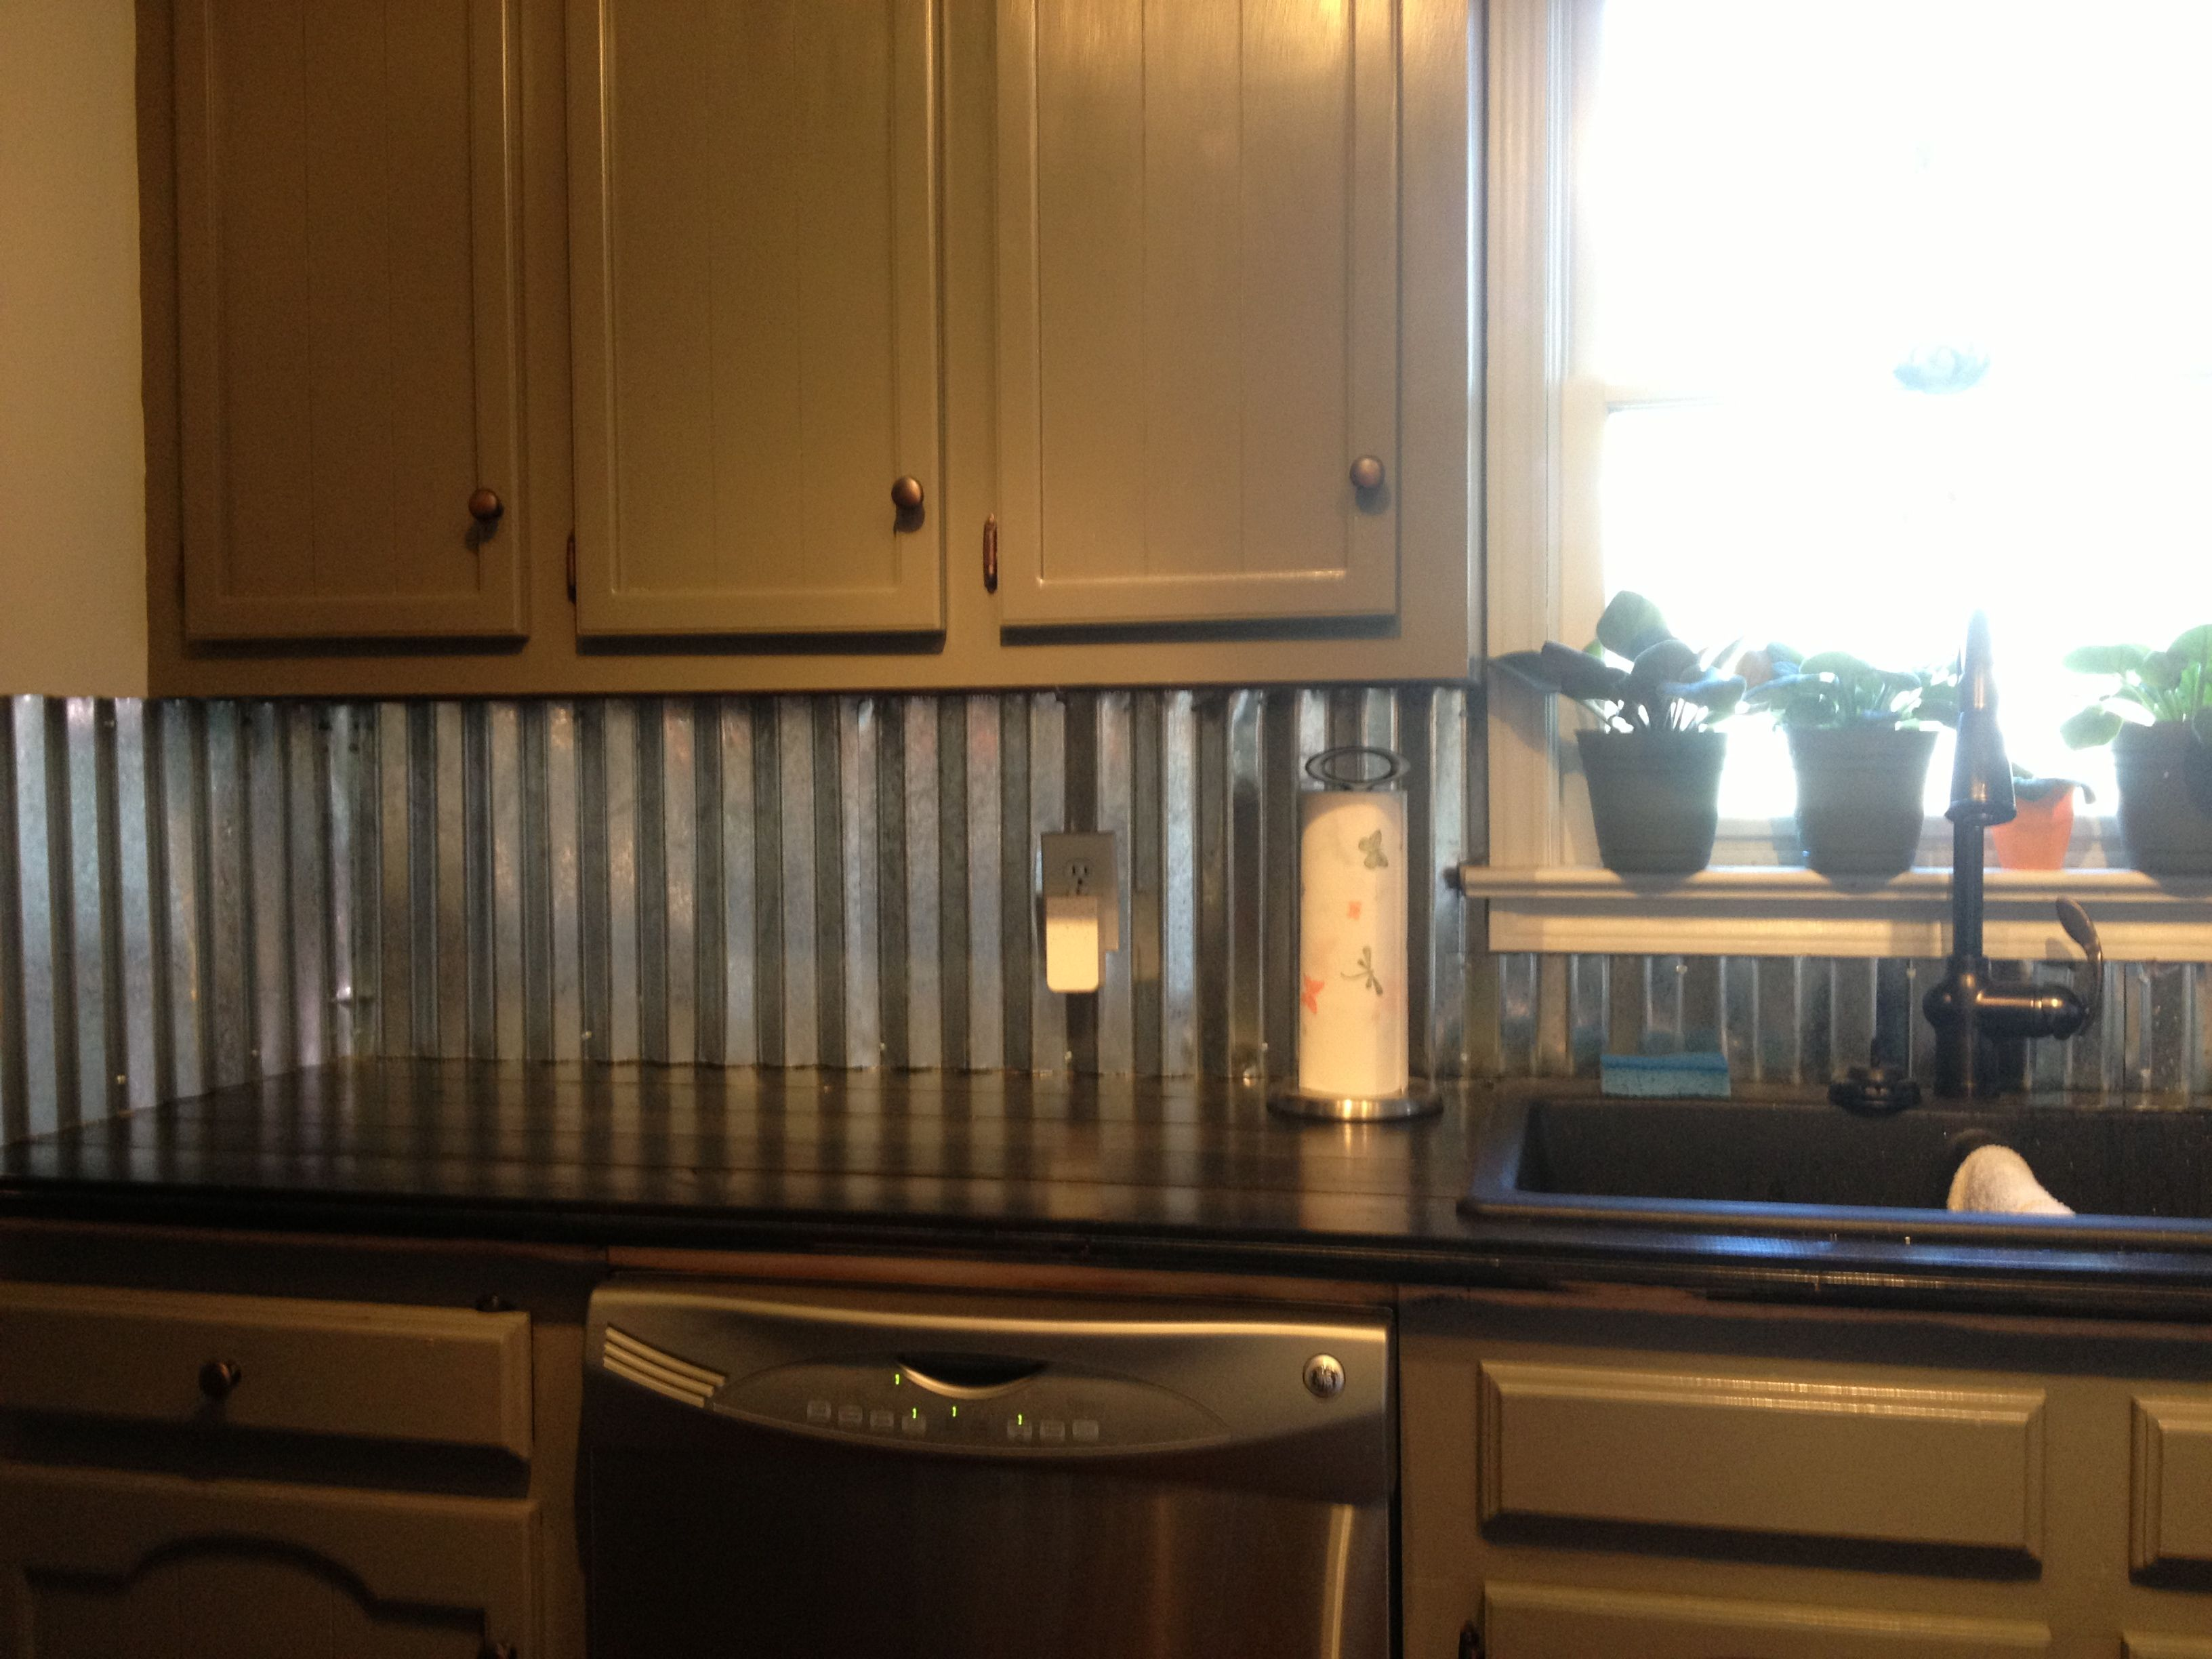 Beau Corrugated Metal Backsplash